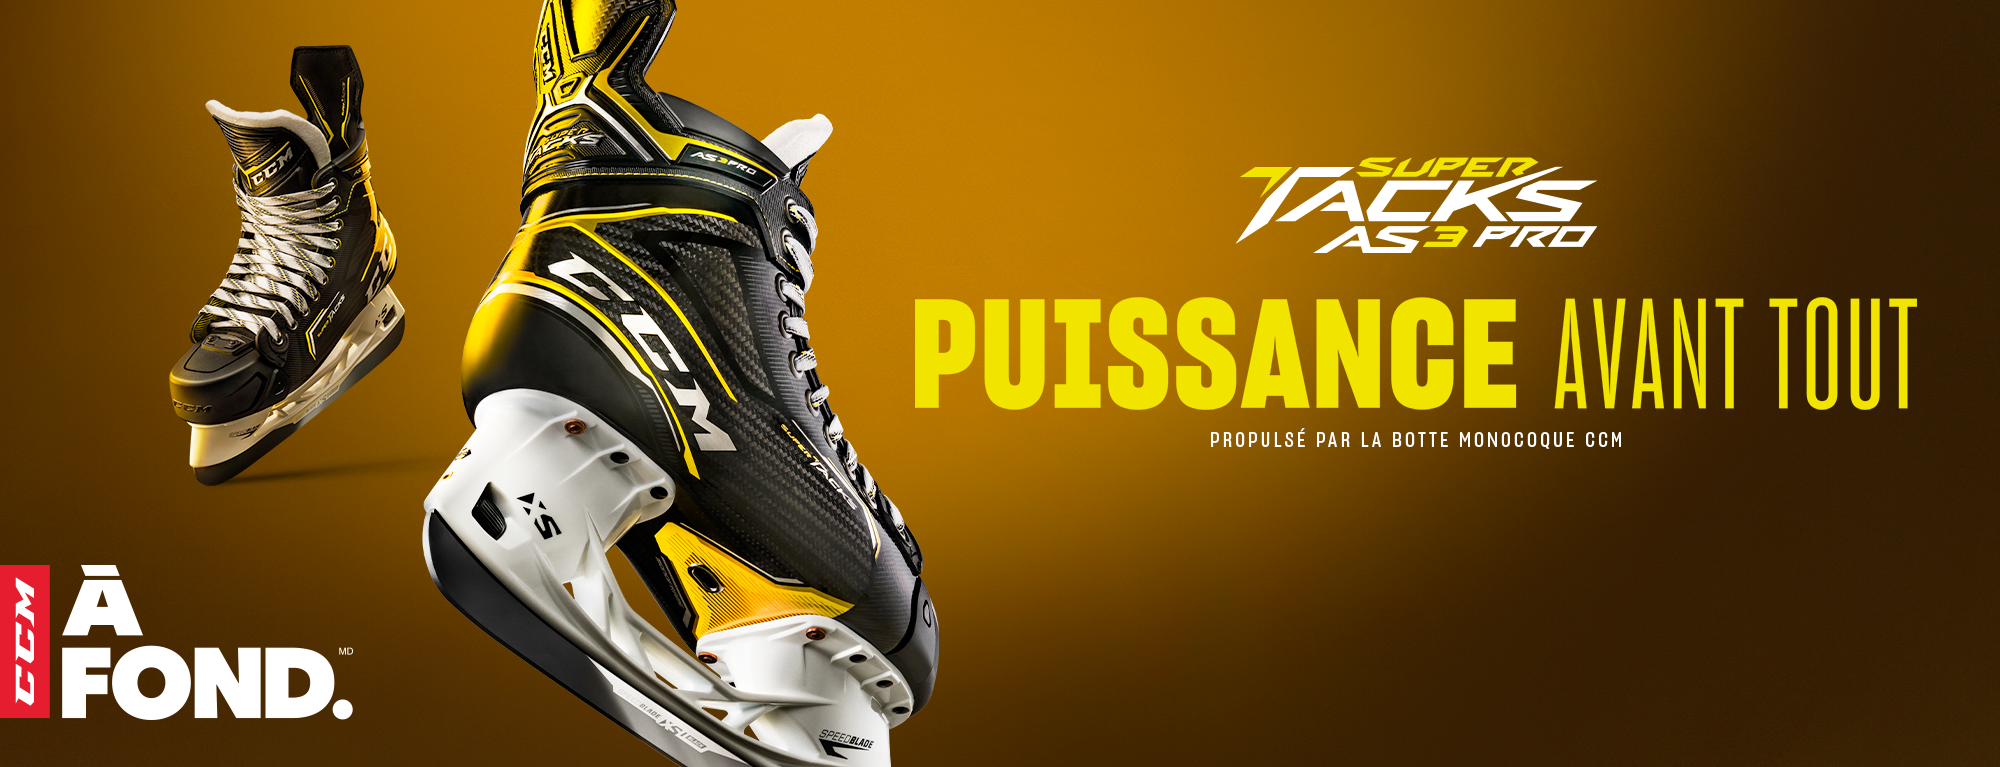 Shop The All-New CCM Super Tacks Hockey Skates For Sale In Store and Online At Your Local Source For Sports Near You.